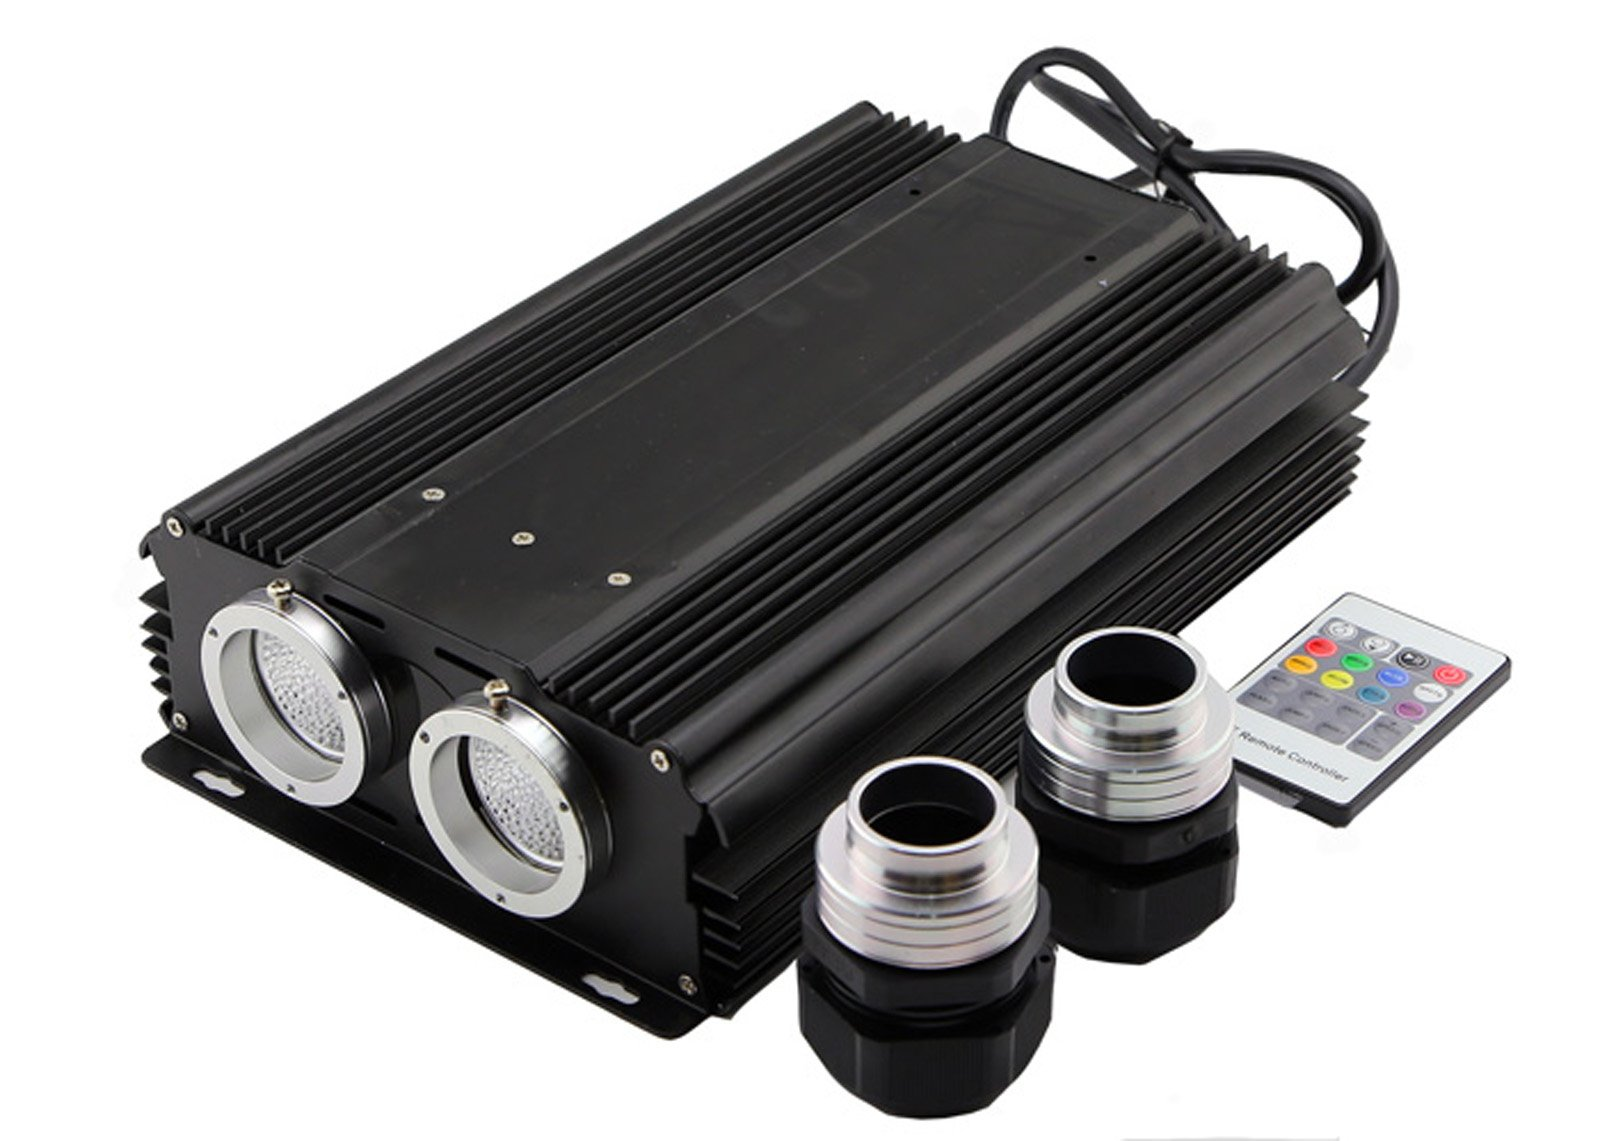 corpereal Led Illuminator Light ,60W High Power Dual Port Multi Color With RF Remote For All Fiber Optic Lights